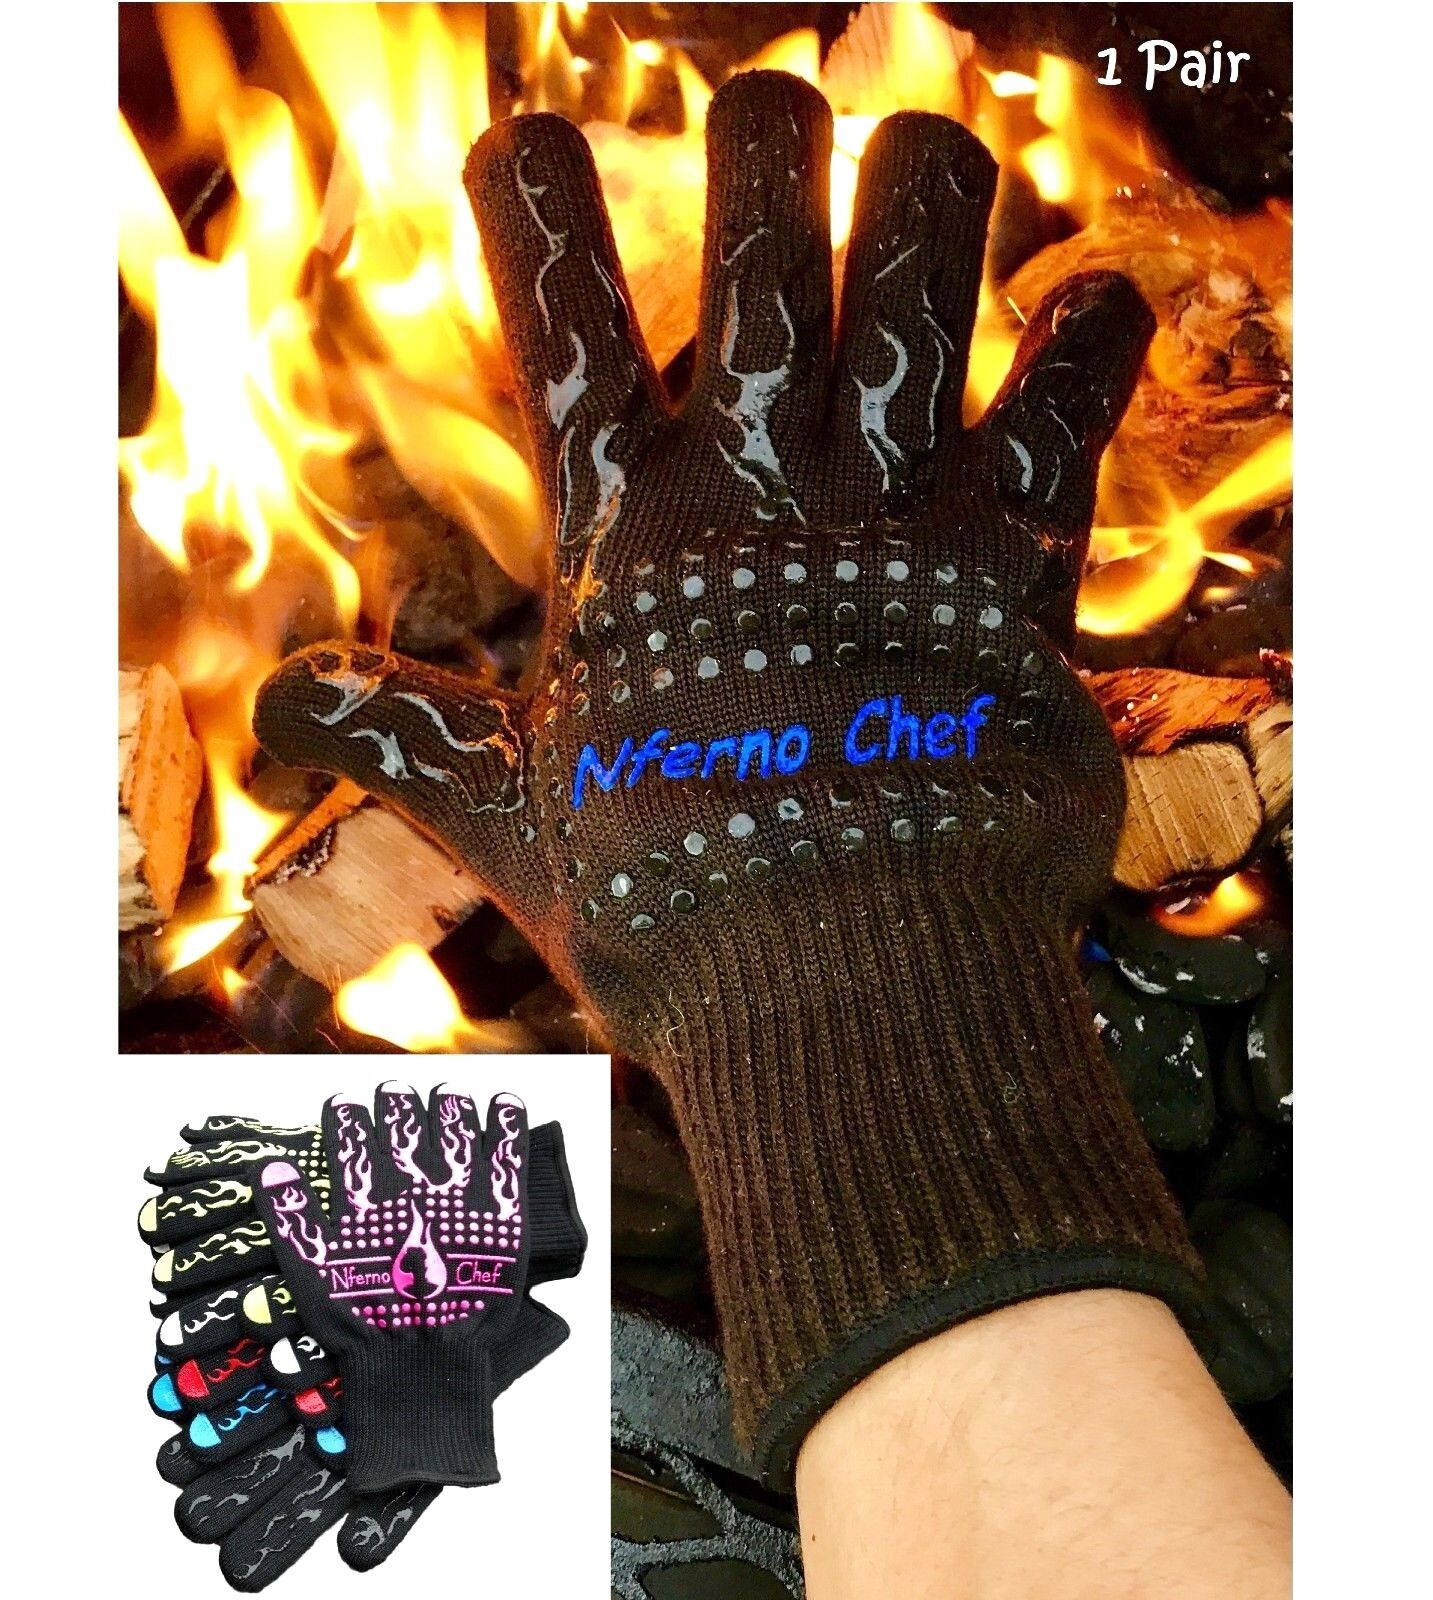 Heat Resistant Cooking Gloves for BBQ, Baking or Grilling: R